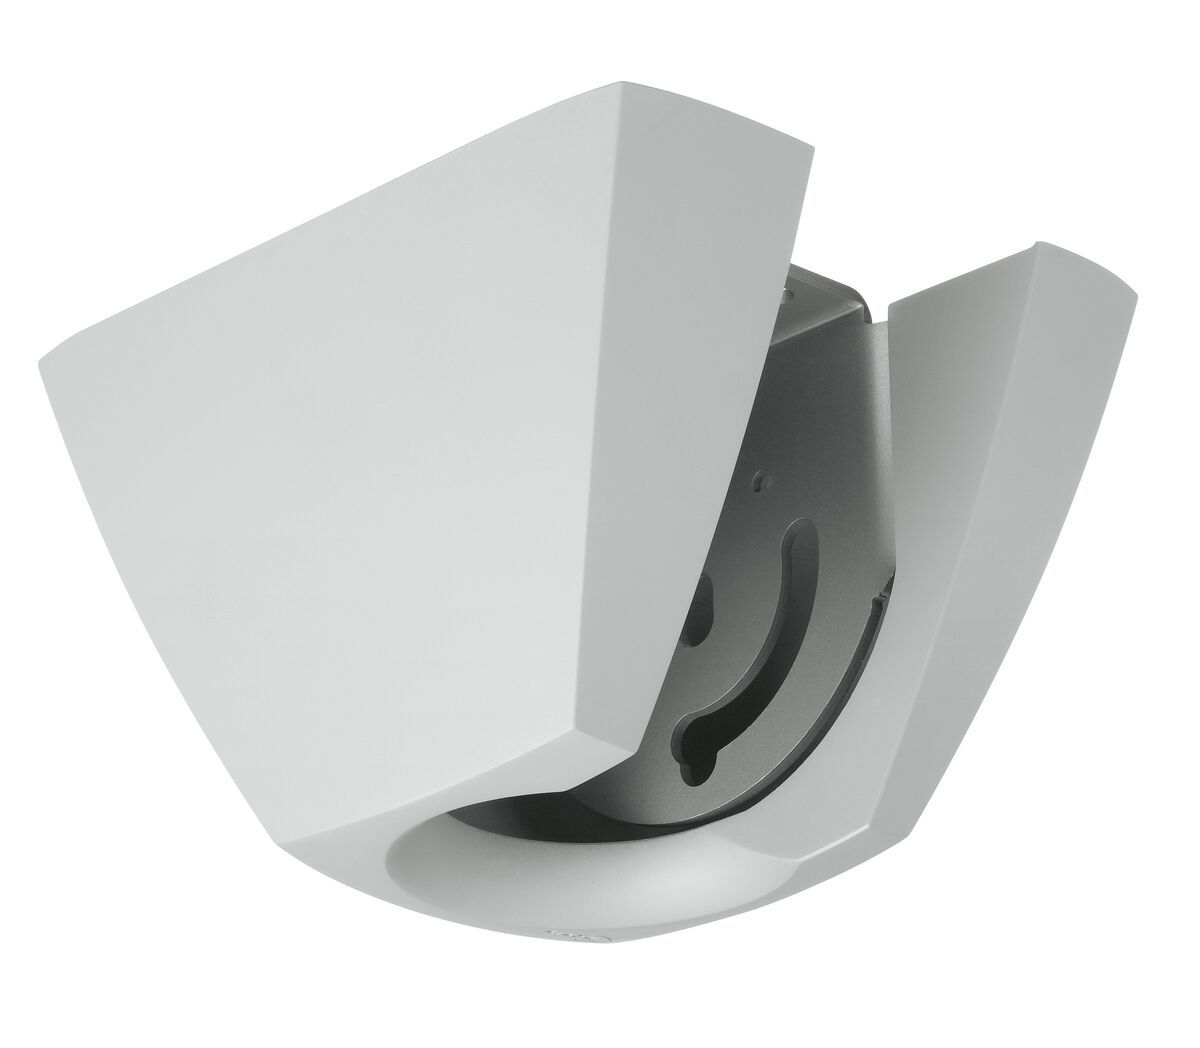 Vogel's PFA 9010 Plaque de plafond - Product